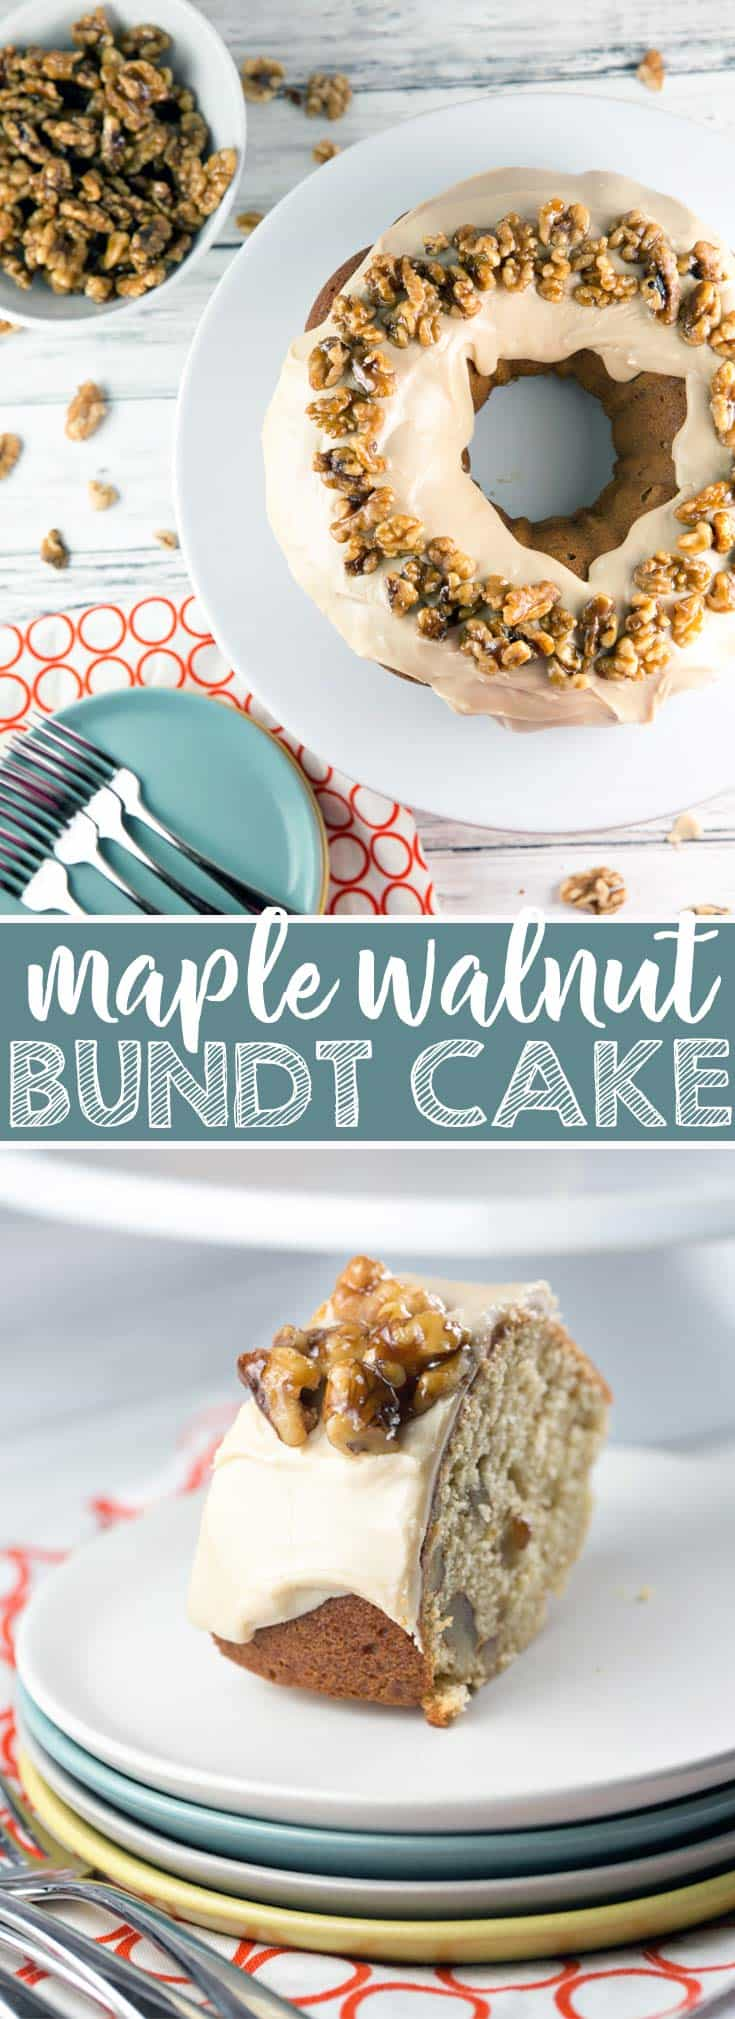 Maple Walnut Bundt Cake Bunsen Burner Bakery